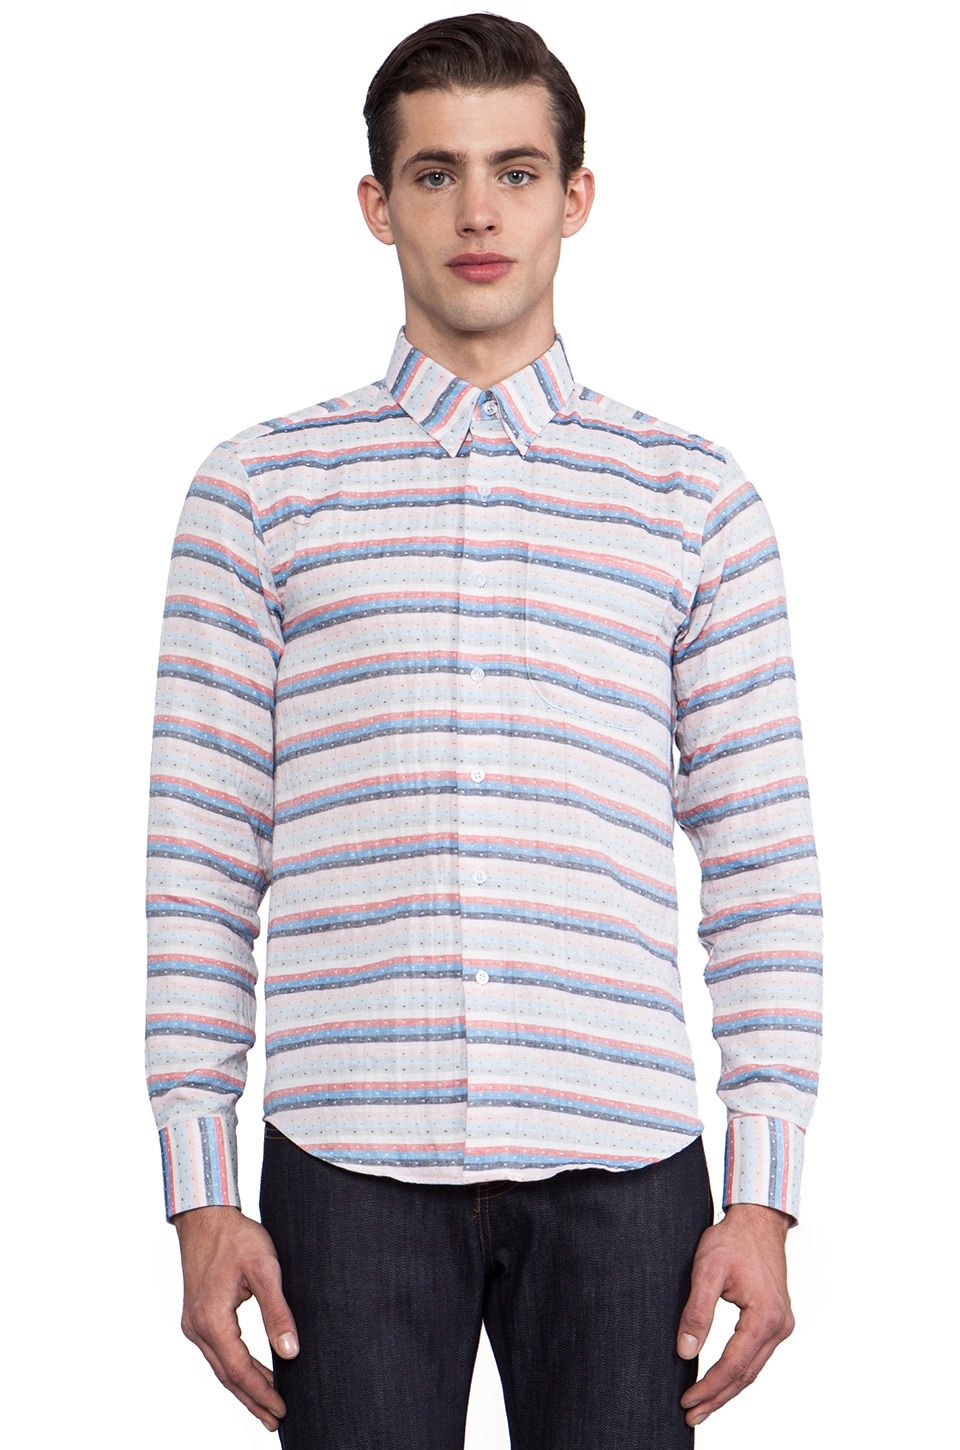 Naked & Famous Denim Regular Shirt Gauze Stripes + Dots in Red & White & Blue